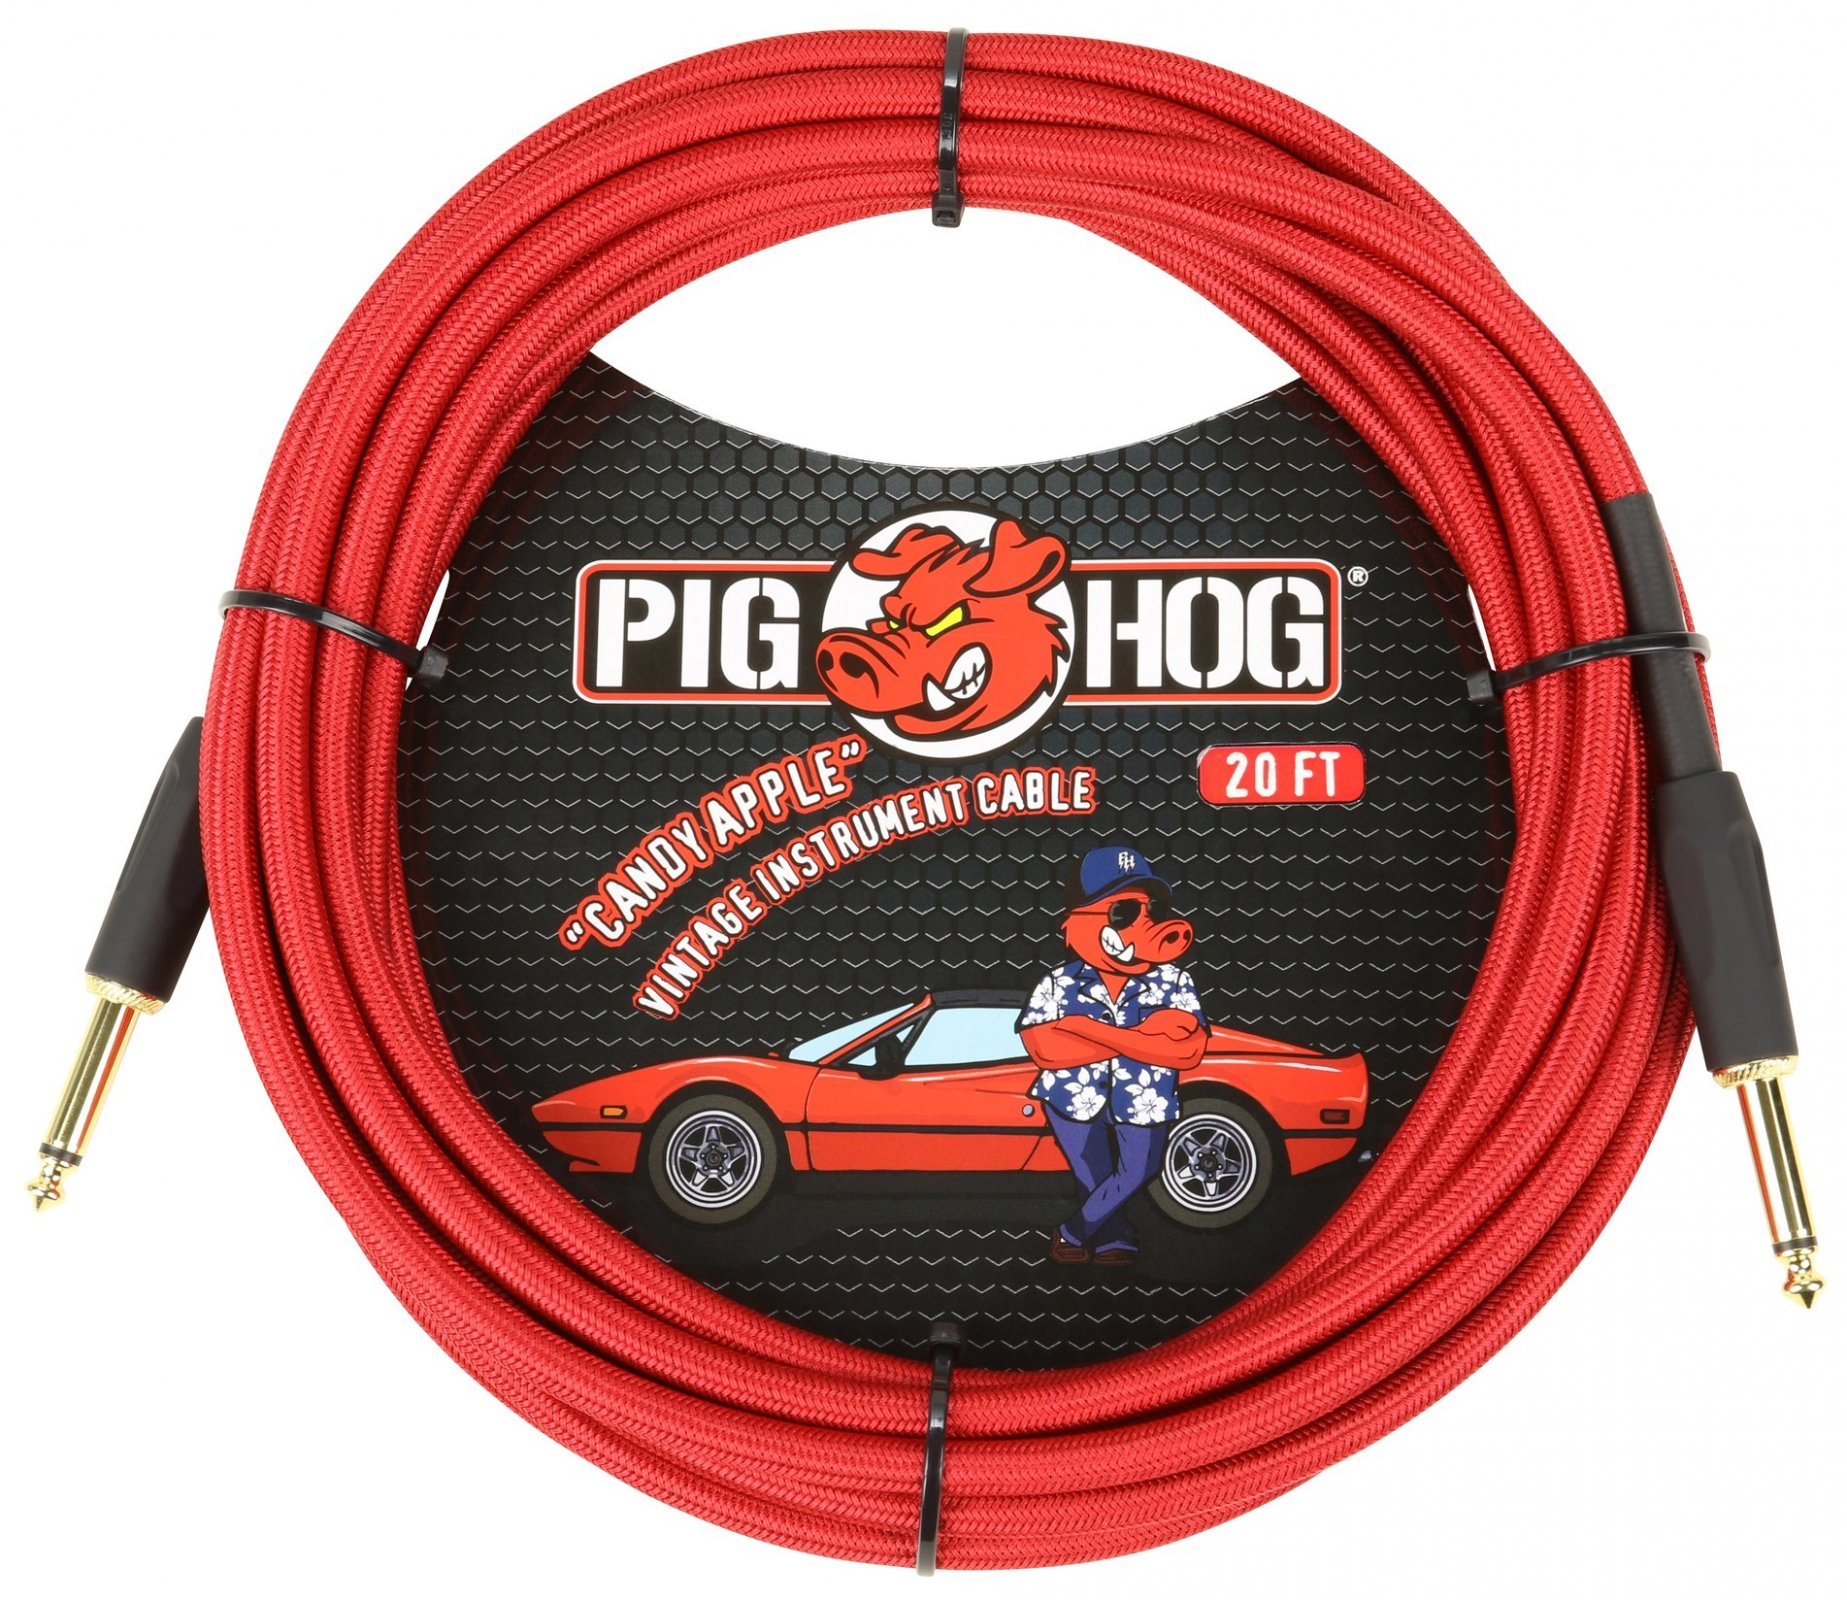 Pig Hog Candy Apple 20ft Instrument Cable